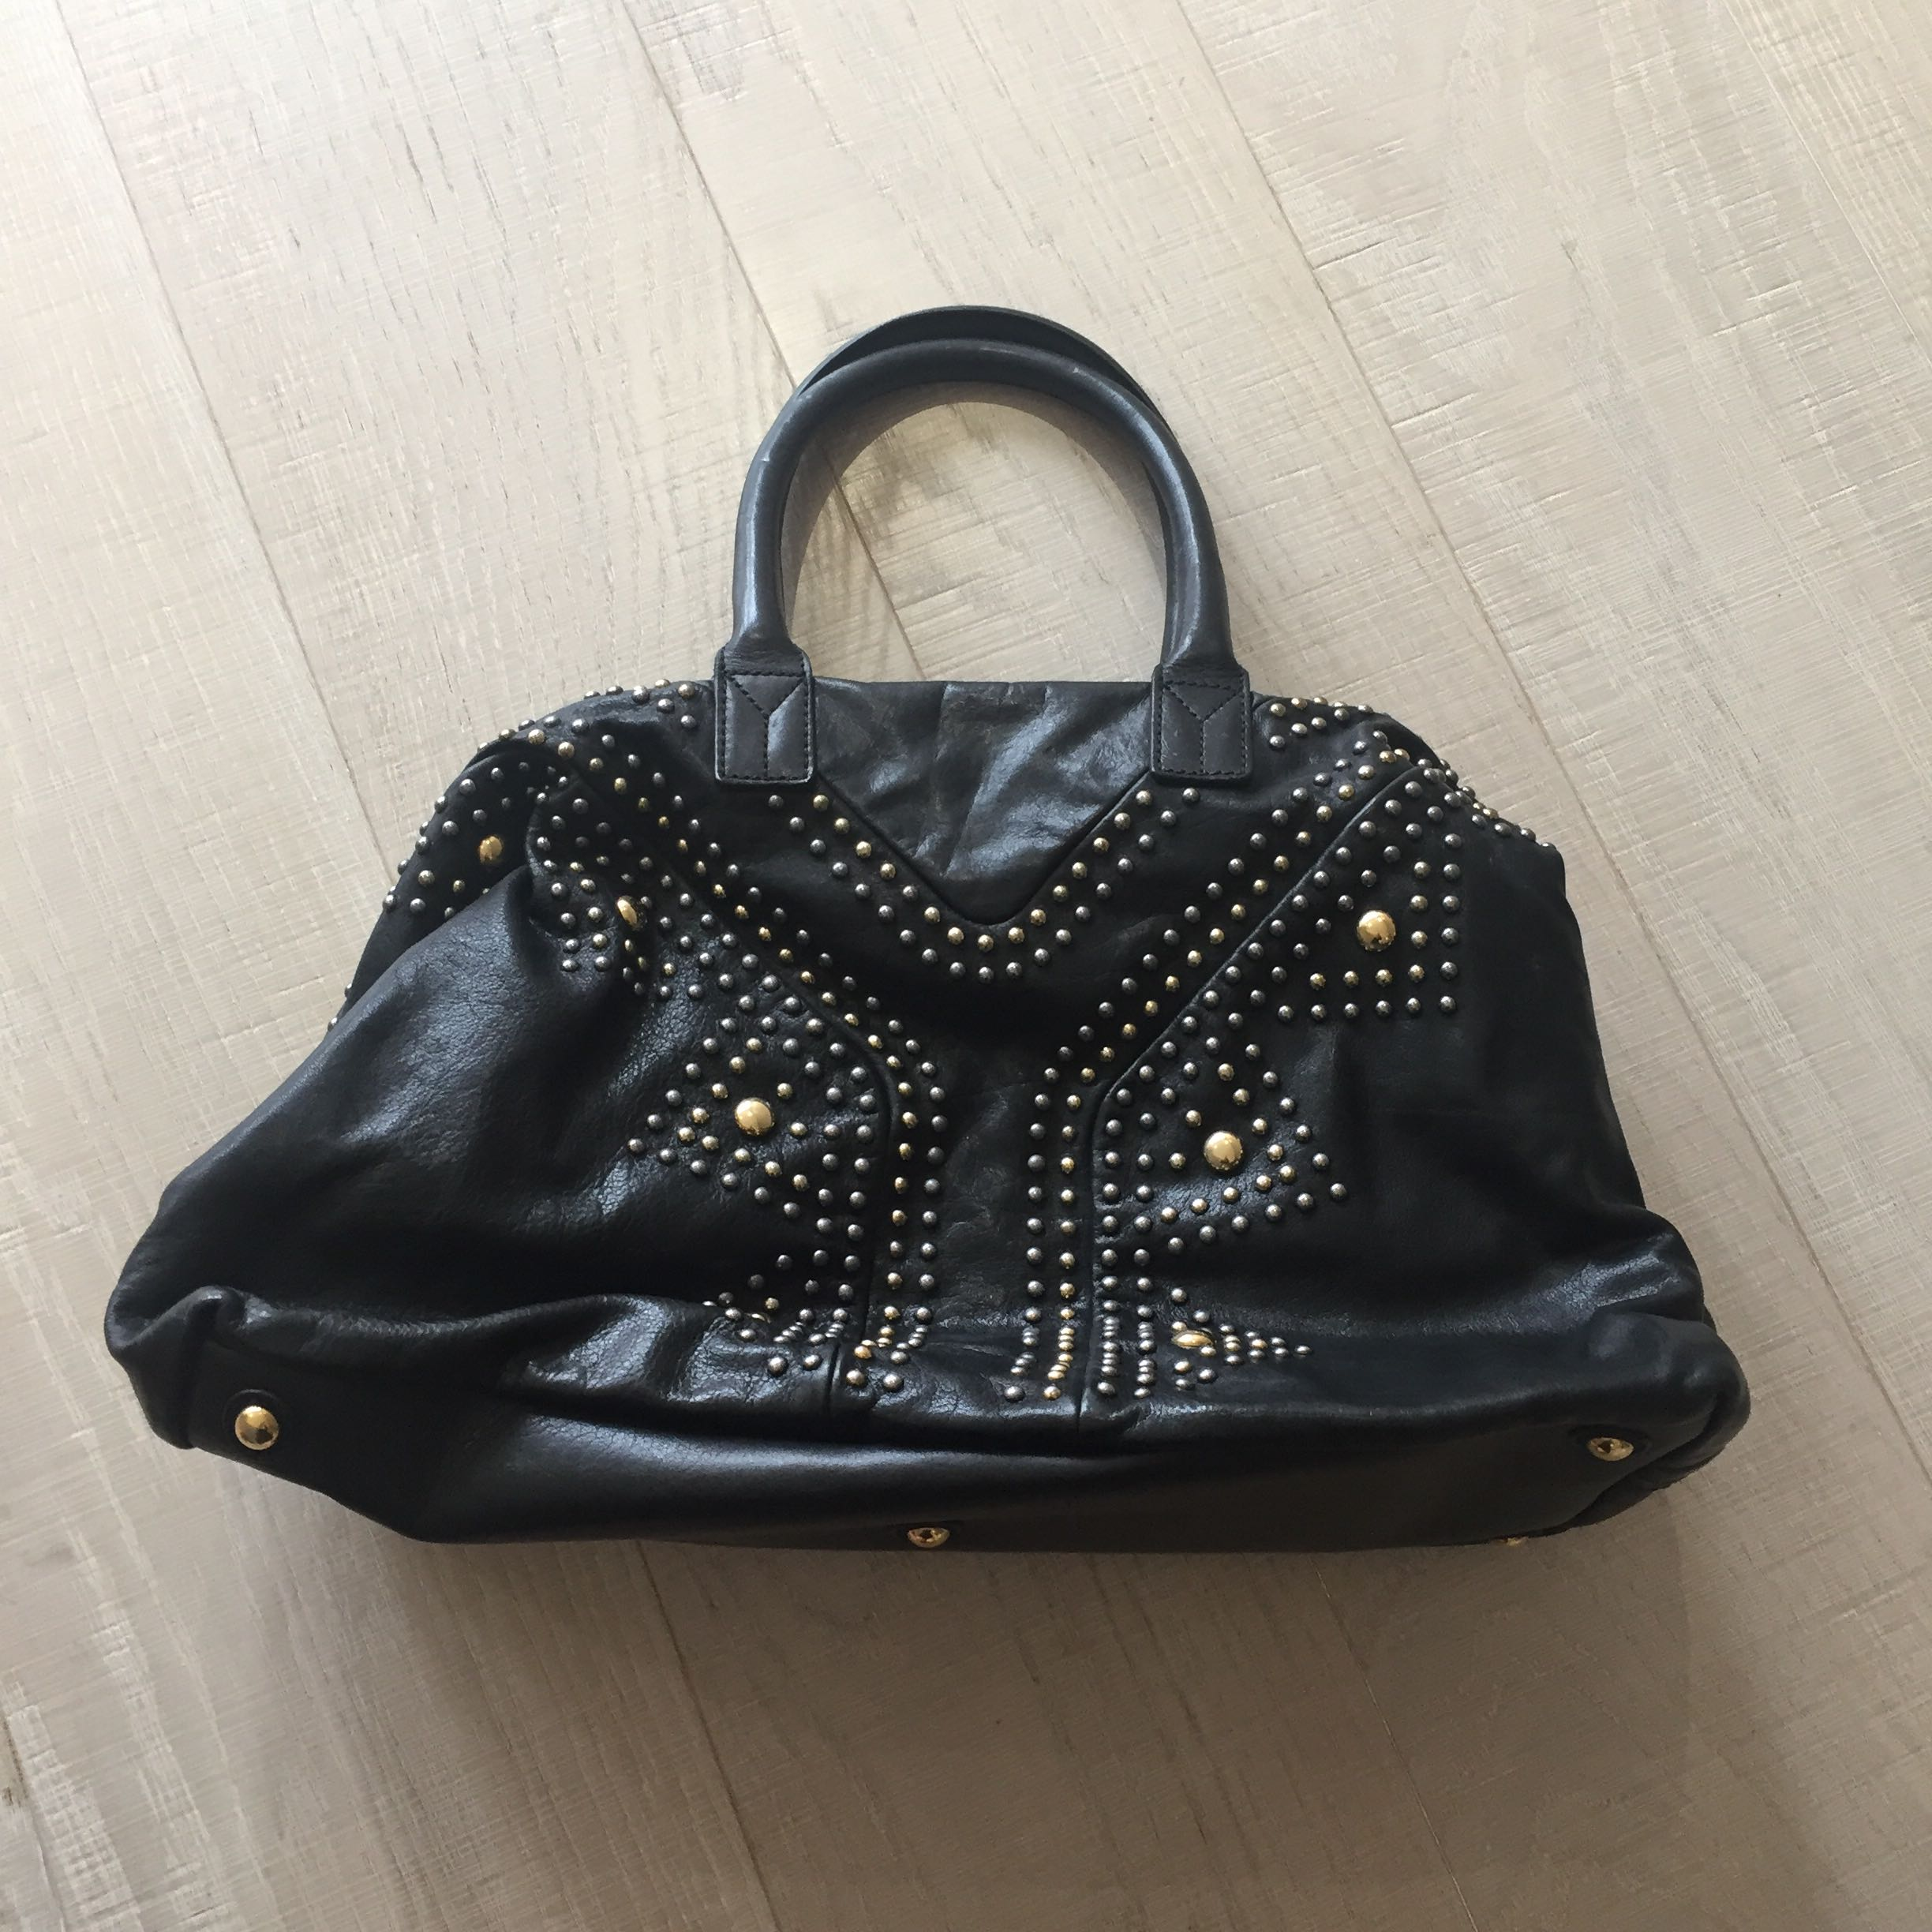 6874936e745 Preloved Authentic YSL Calfskin Studded Sac Y Rock Black, Women's Fashion,  Bags & Wallets on Carousell